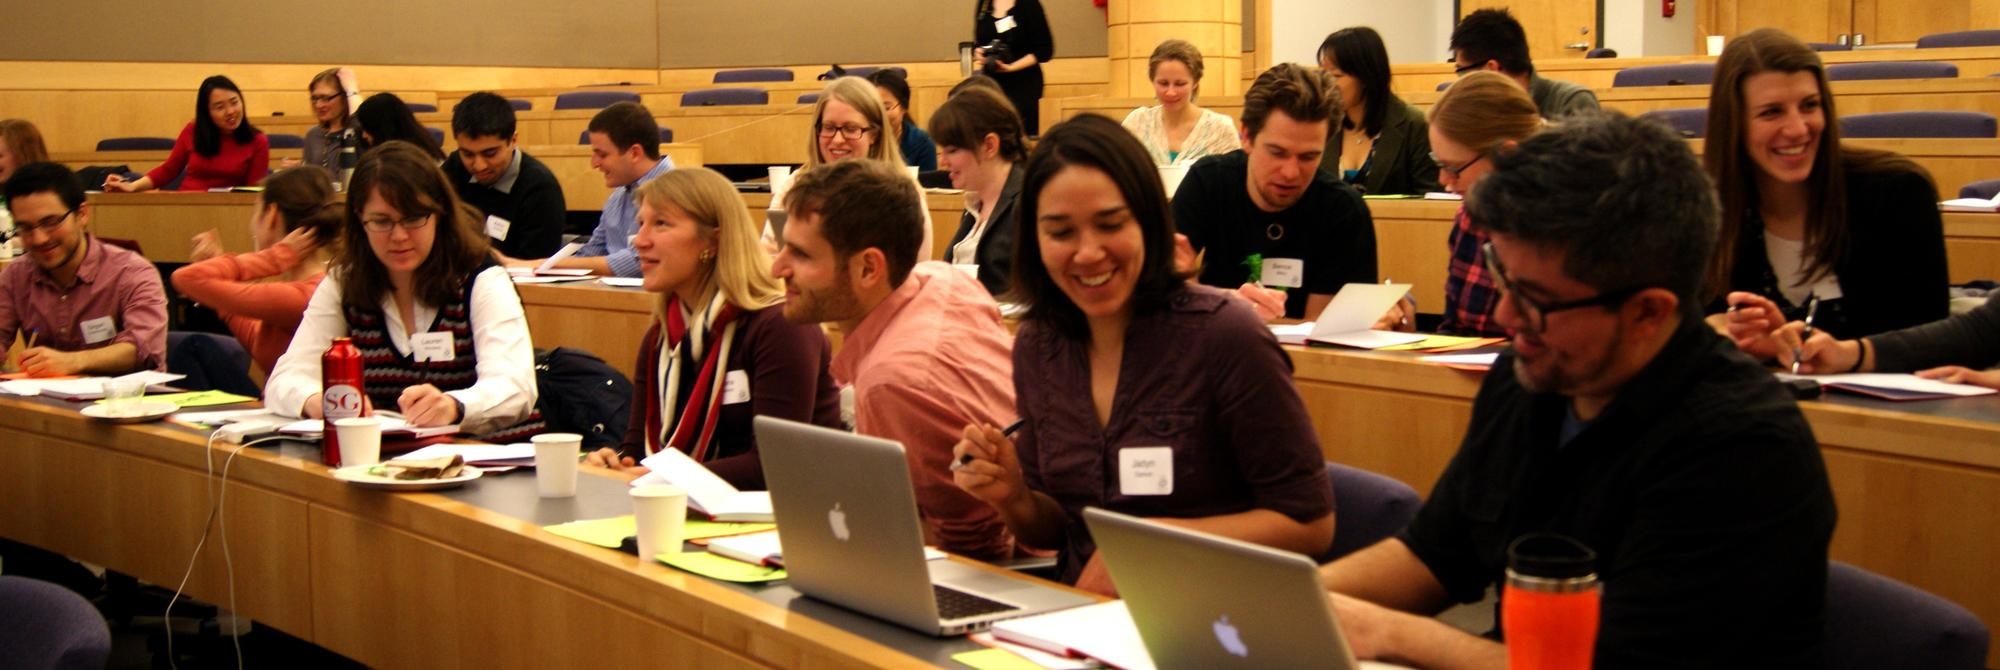 ComSciCon graduate student participants discussing during the 2014 local workshop.